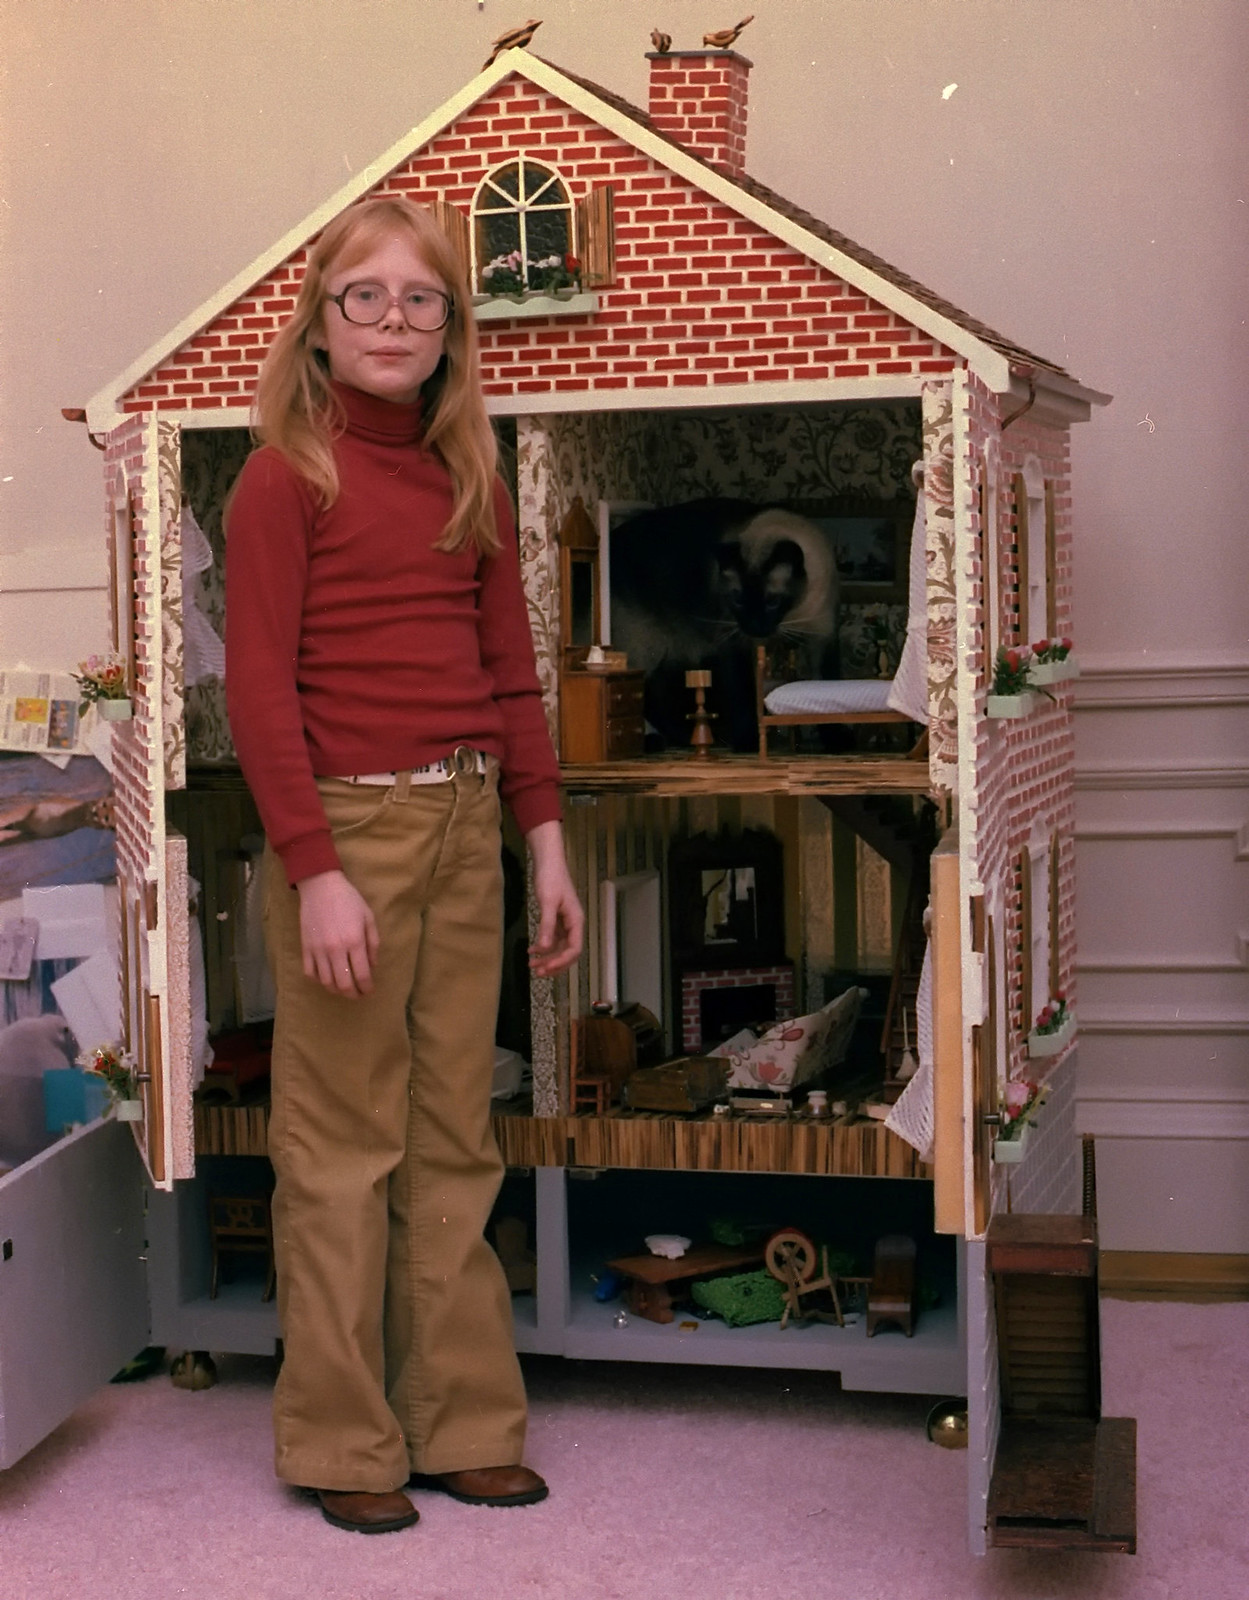 President Carter's daughter Amy poses with her dollhouse at the White House, 1978